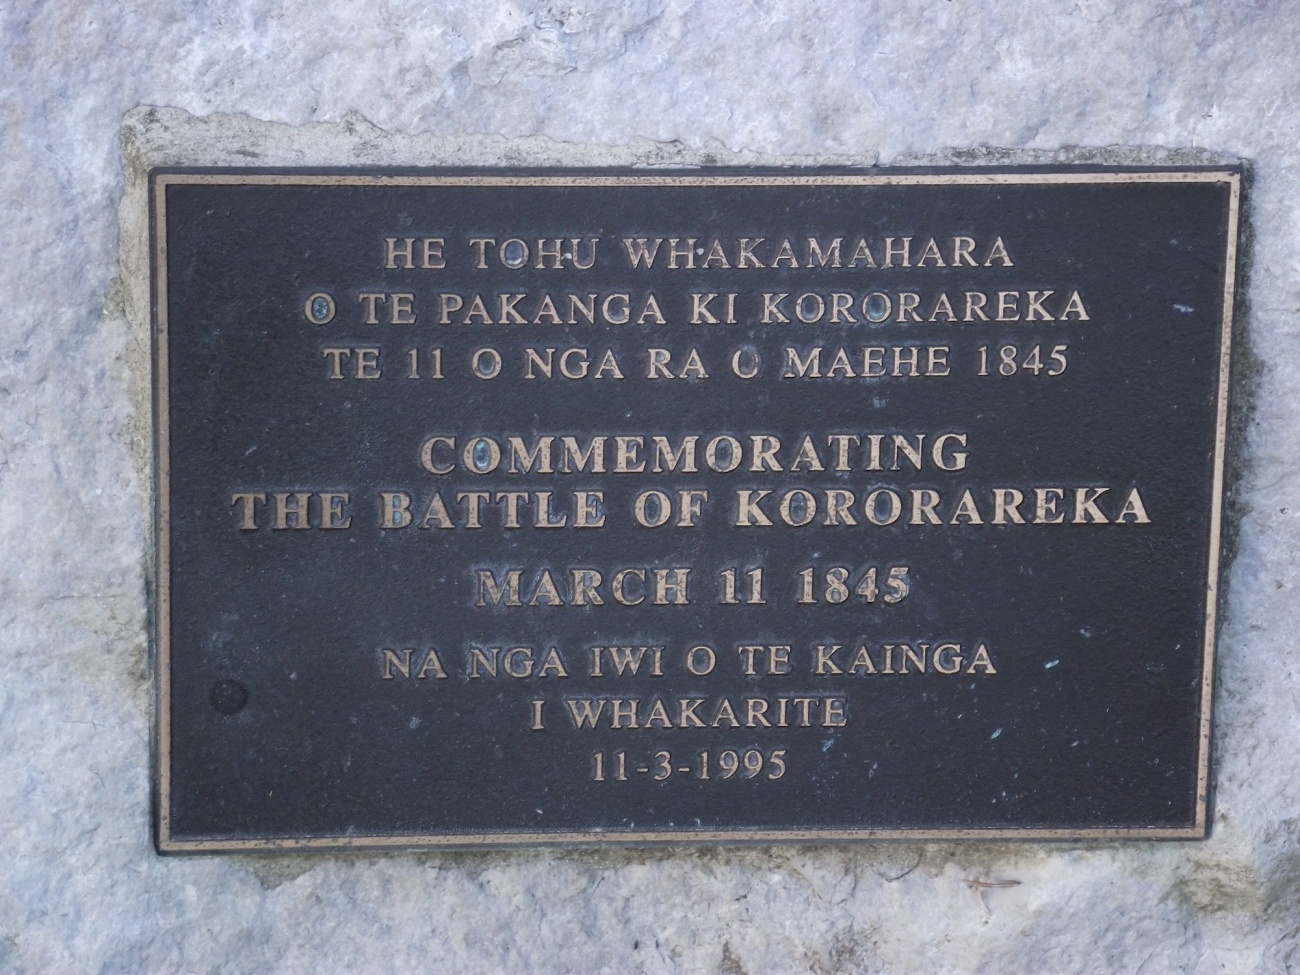 Memorial commemorating the Battle of Kororareka © Lemuel Lyes 2013